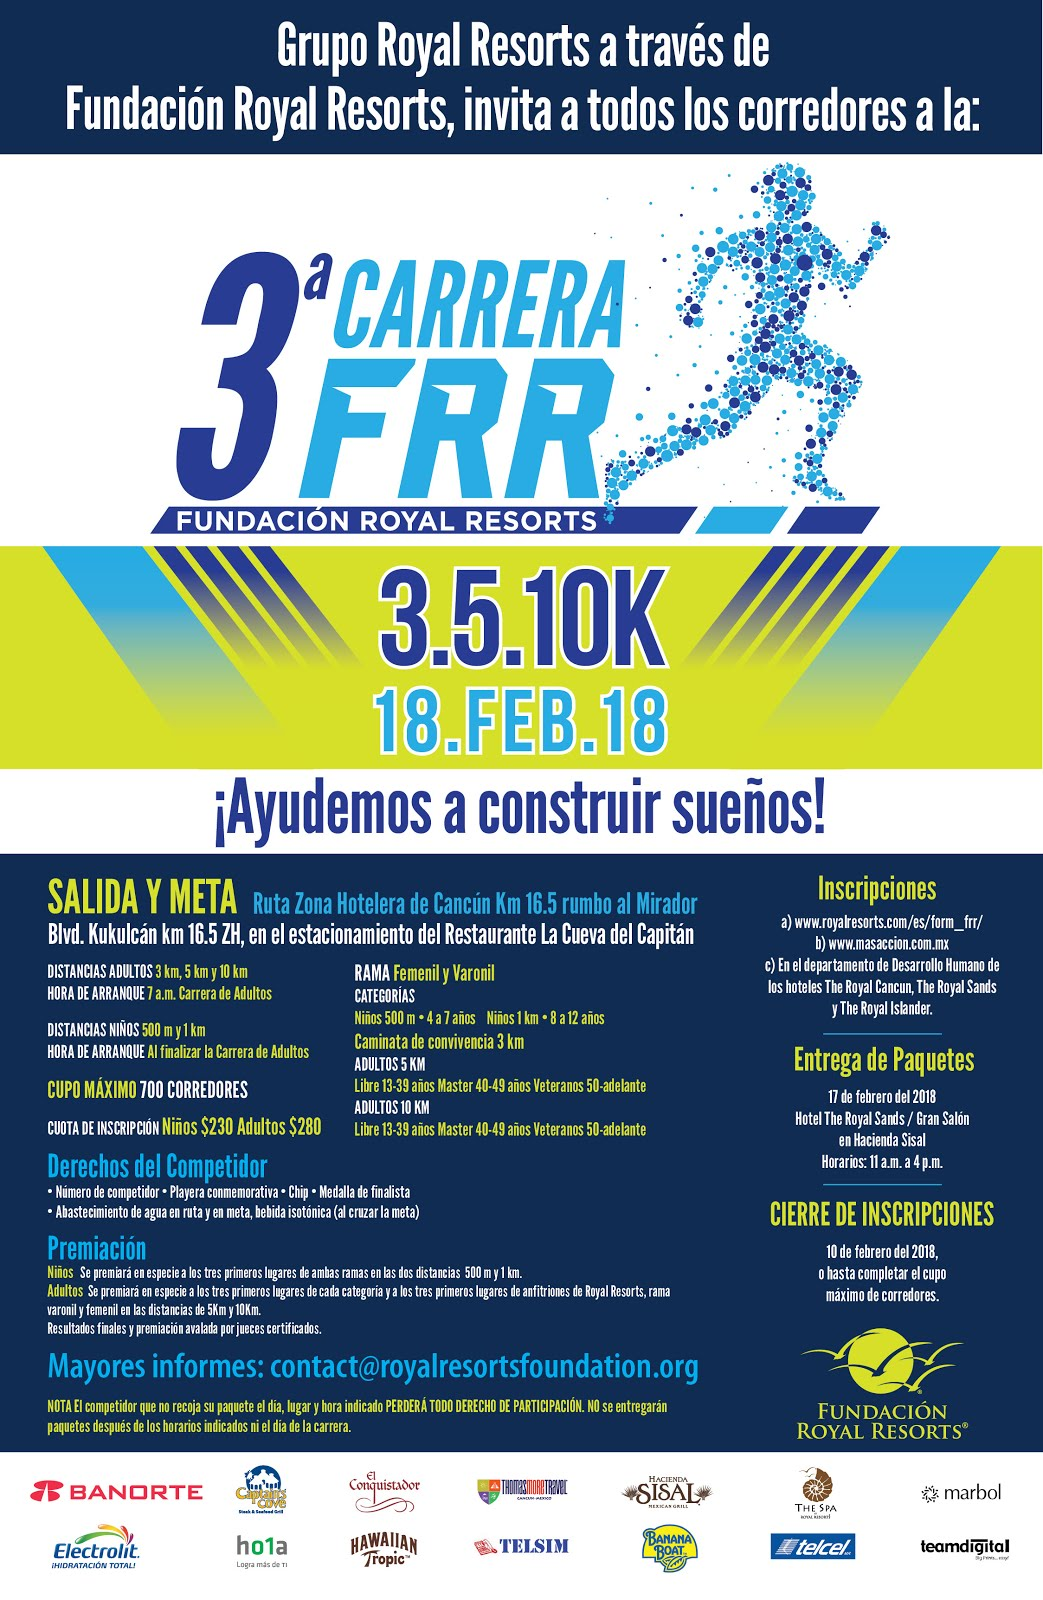 3ra Carrera Fundación Royal Resorts